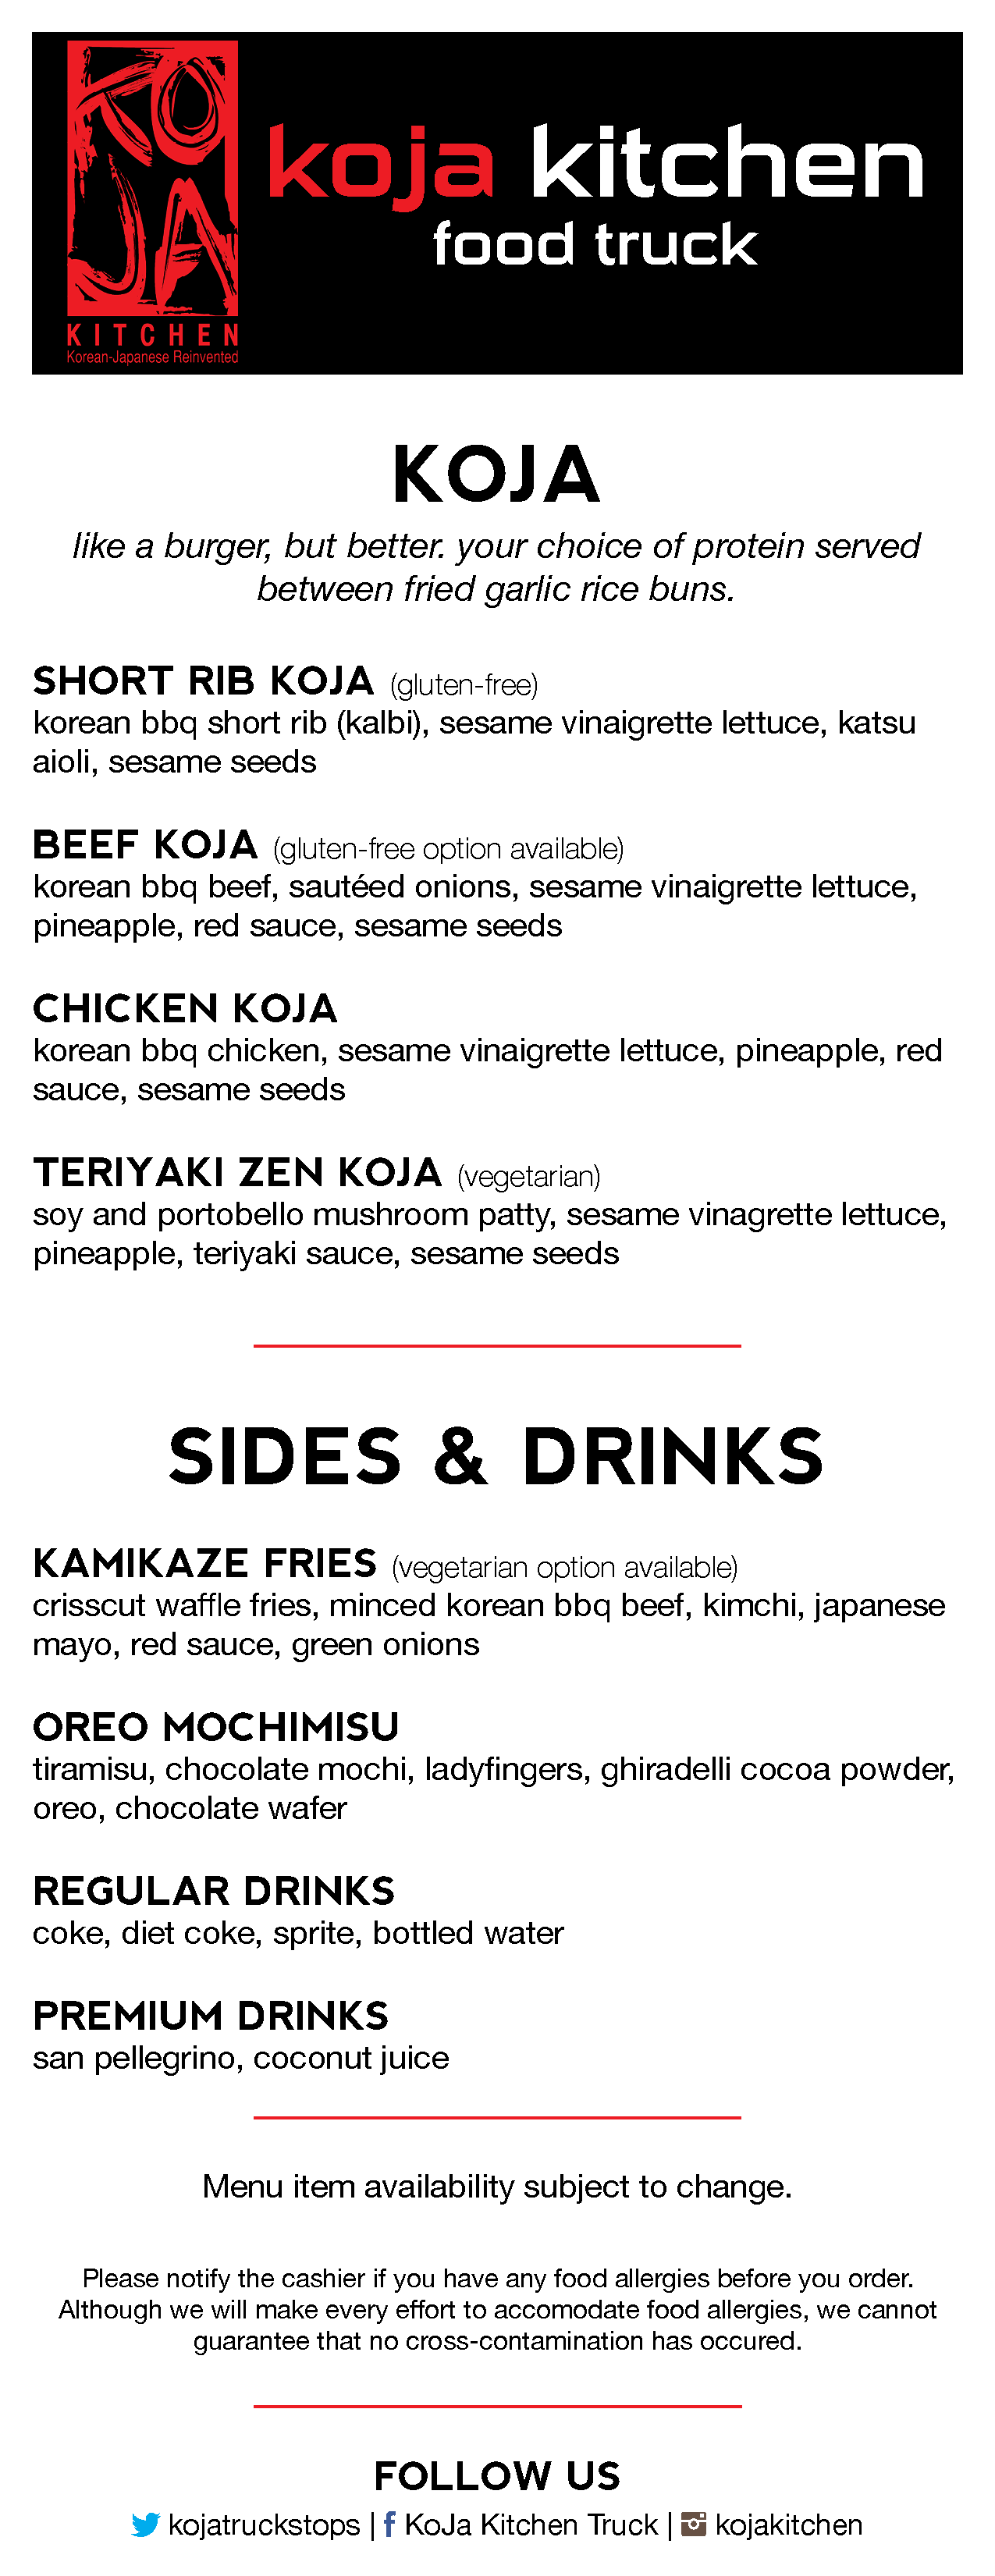 Koja Kitchen Menu Food Truck